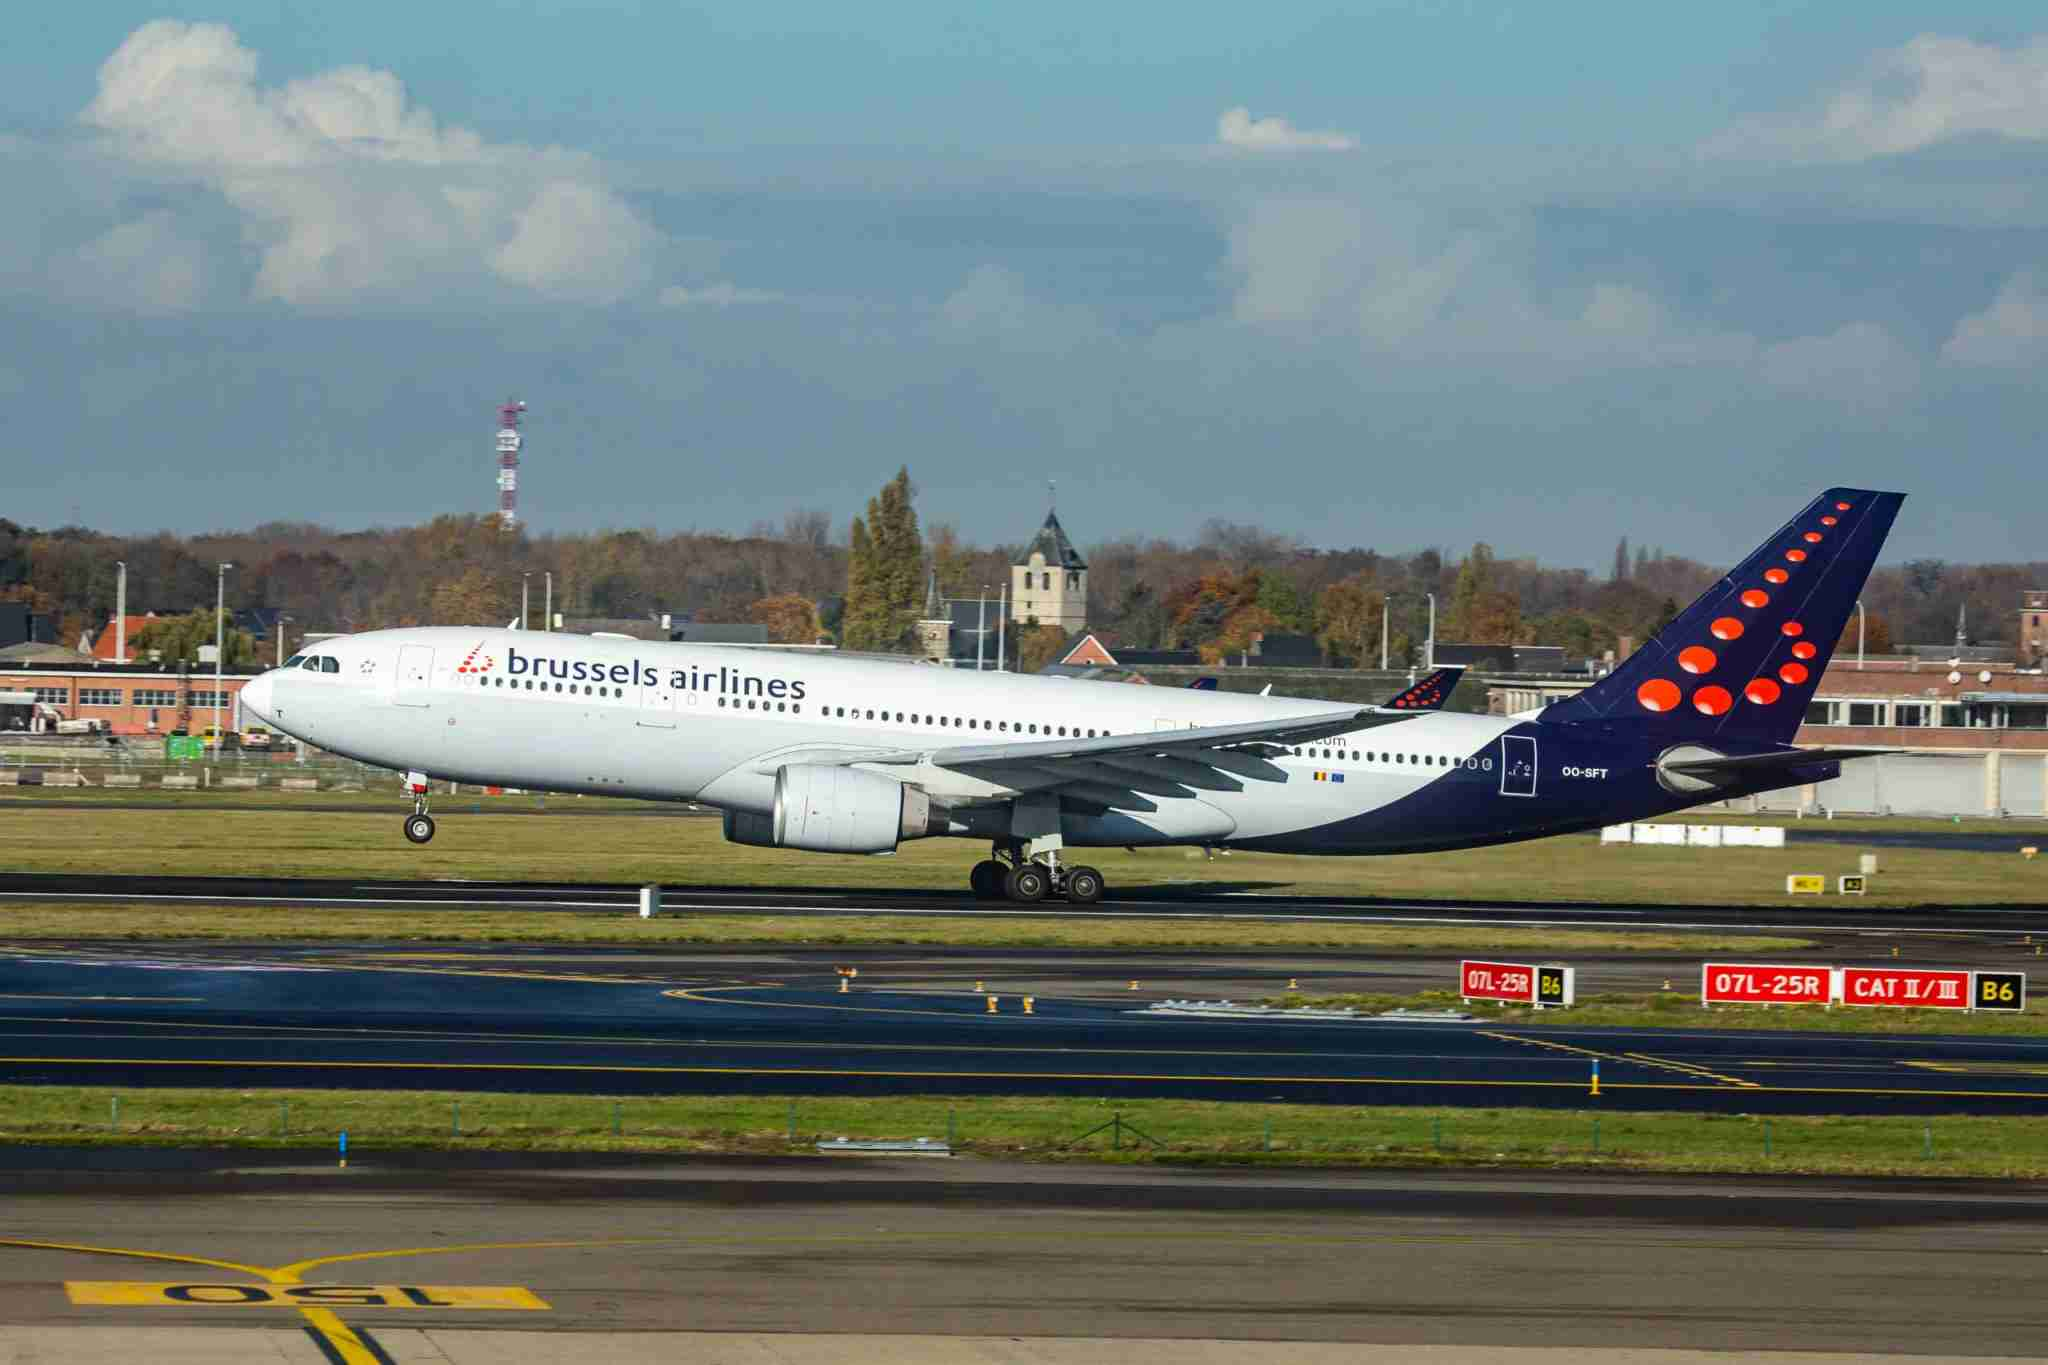 Brussels Airlines Airbus A330-200 aircraft as seen during take off in rotation phase, departing from the runway from Brussels Zaventem BRU EBBR Airport on 19 November 2019. The airplane has the registration OO-SFT, 2x PW jet engines and the airline carrier is a member of Star Alliance aviation alliance. Brussels Airlines SN BEL BEELINE is the flag carrier of Belgium, part of the Lufthansa Group with 62 jet aircraft fleet and 120 destinations. (Photo by Nicolas Economou/NurPhoto via Getty Images)